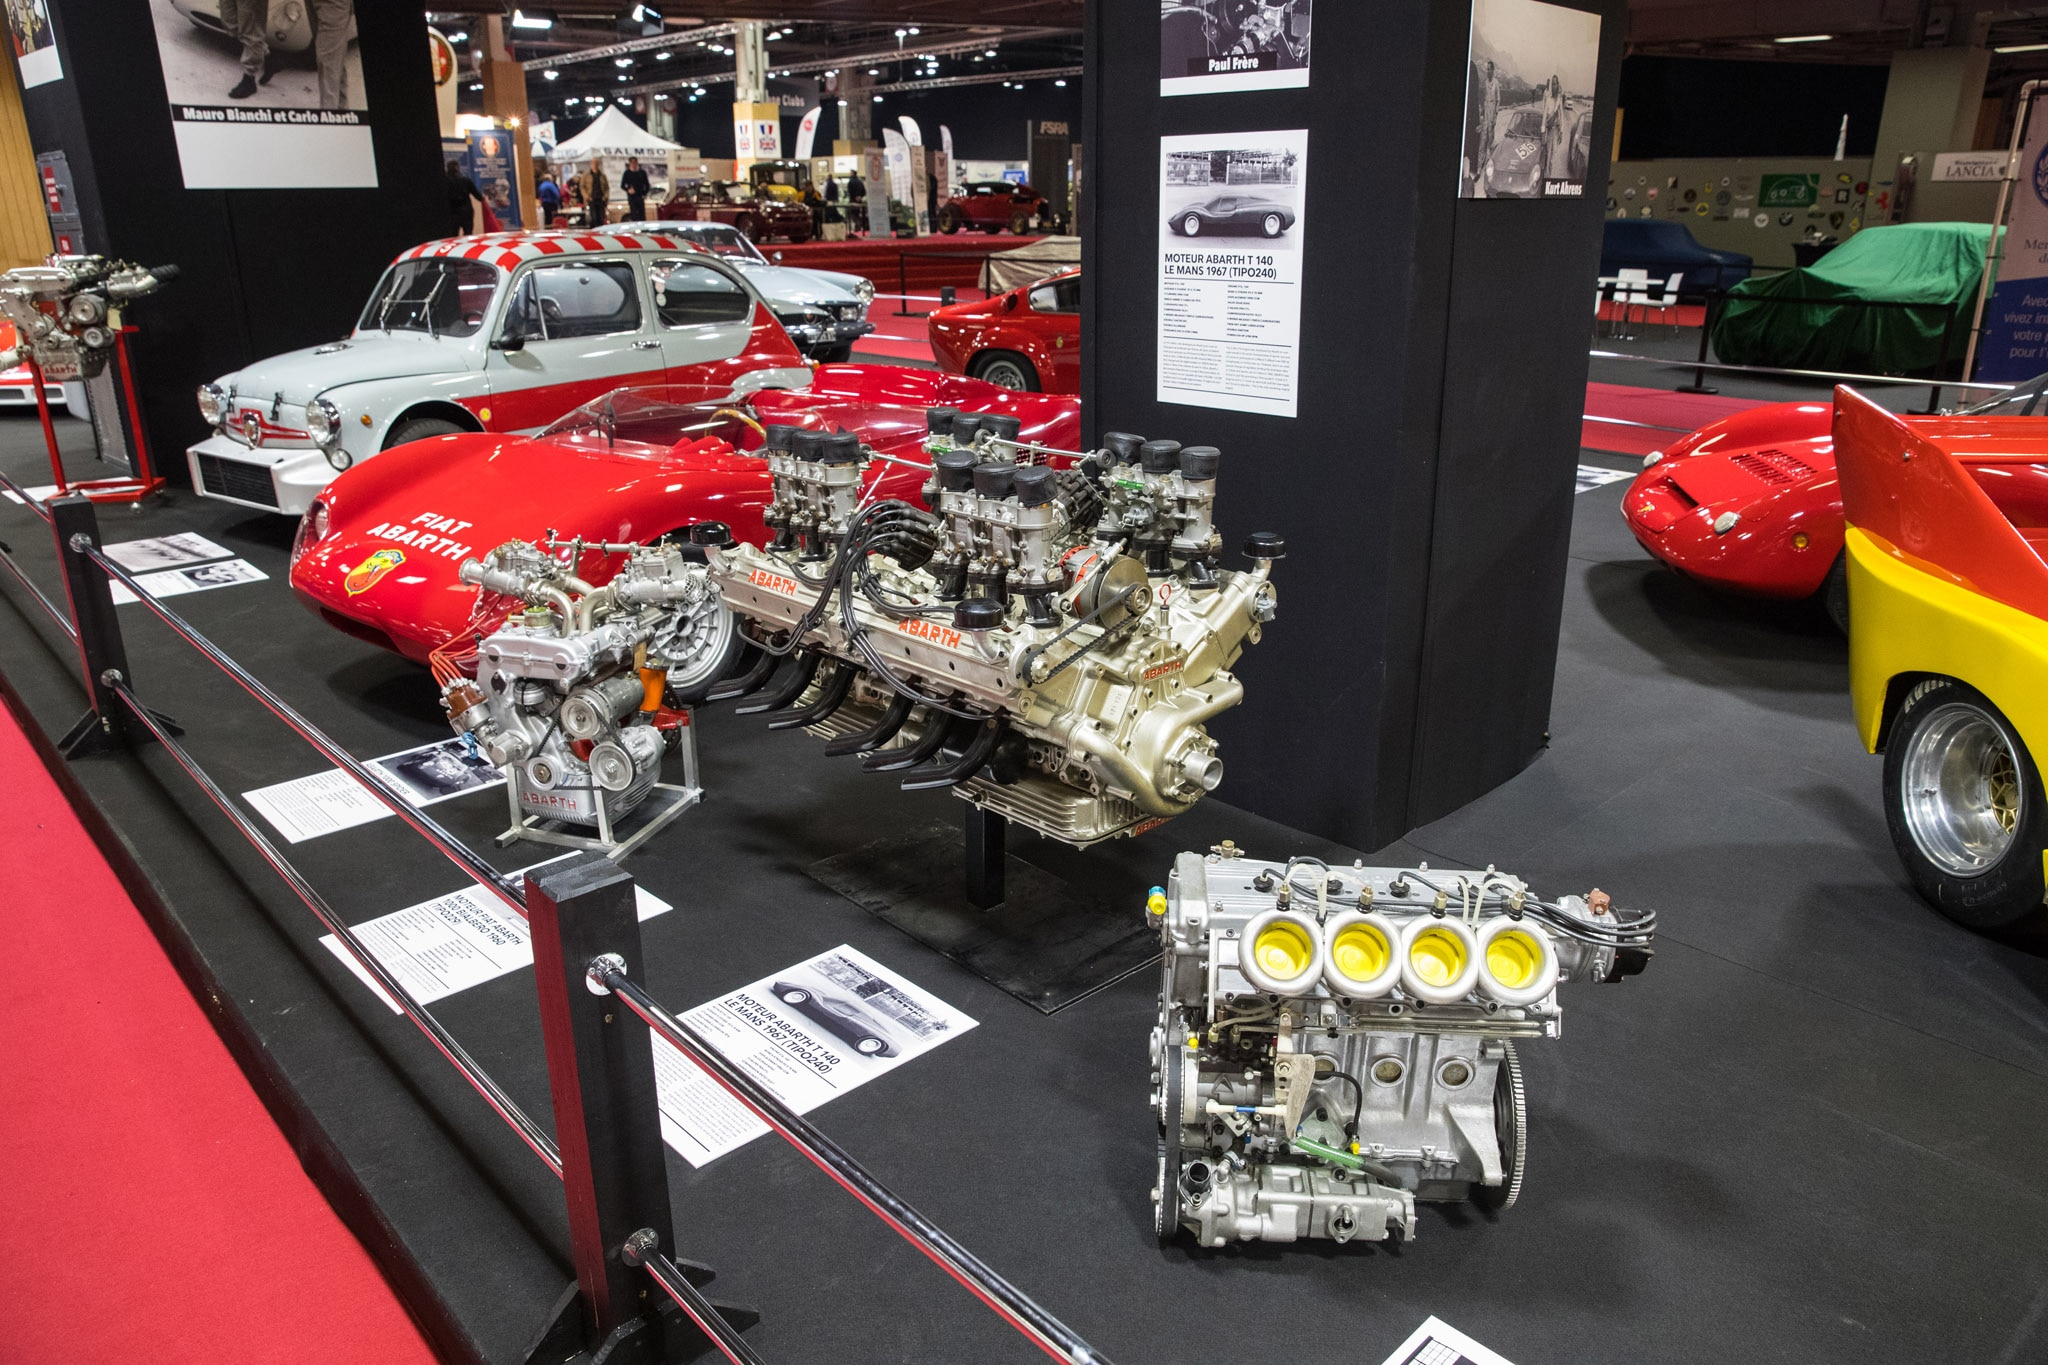 Wm 2018 Retromobile 31